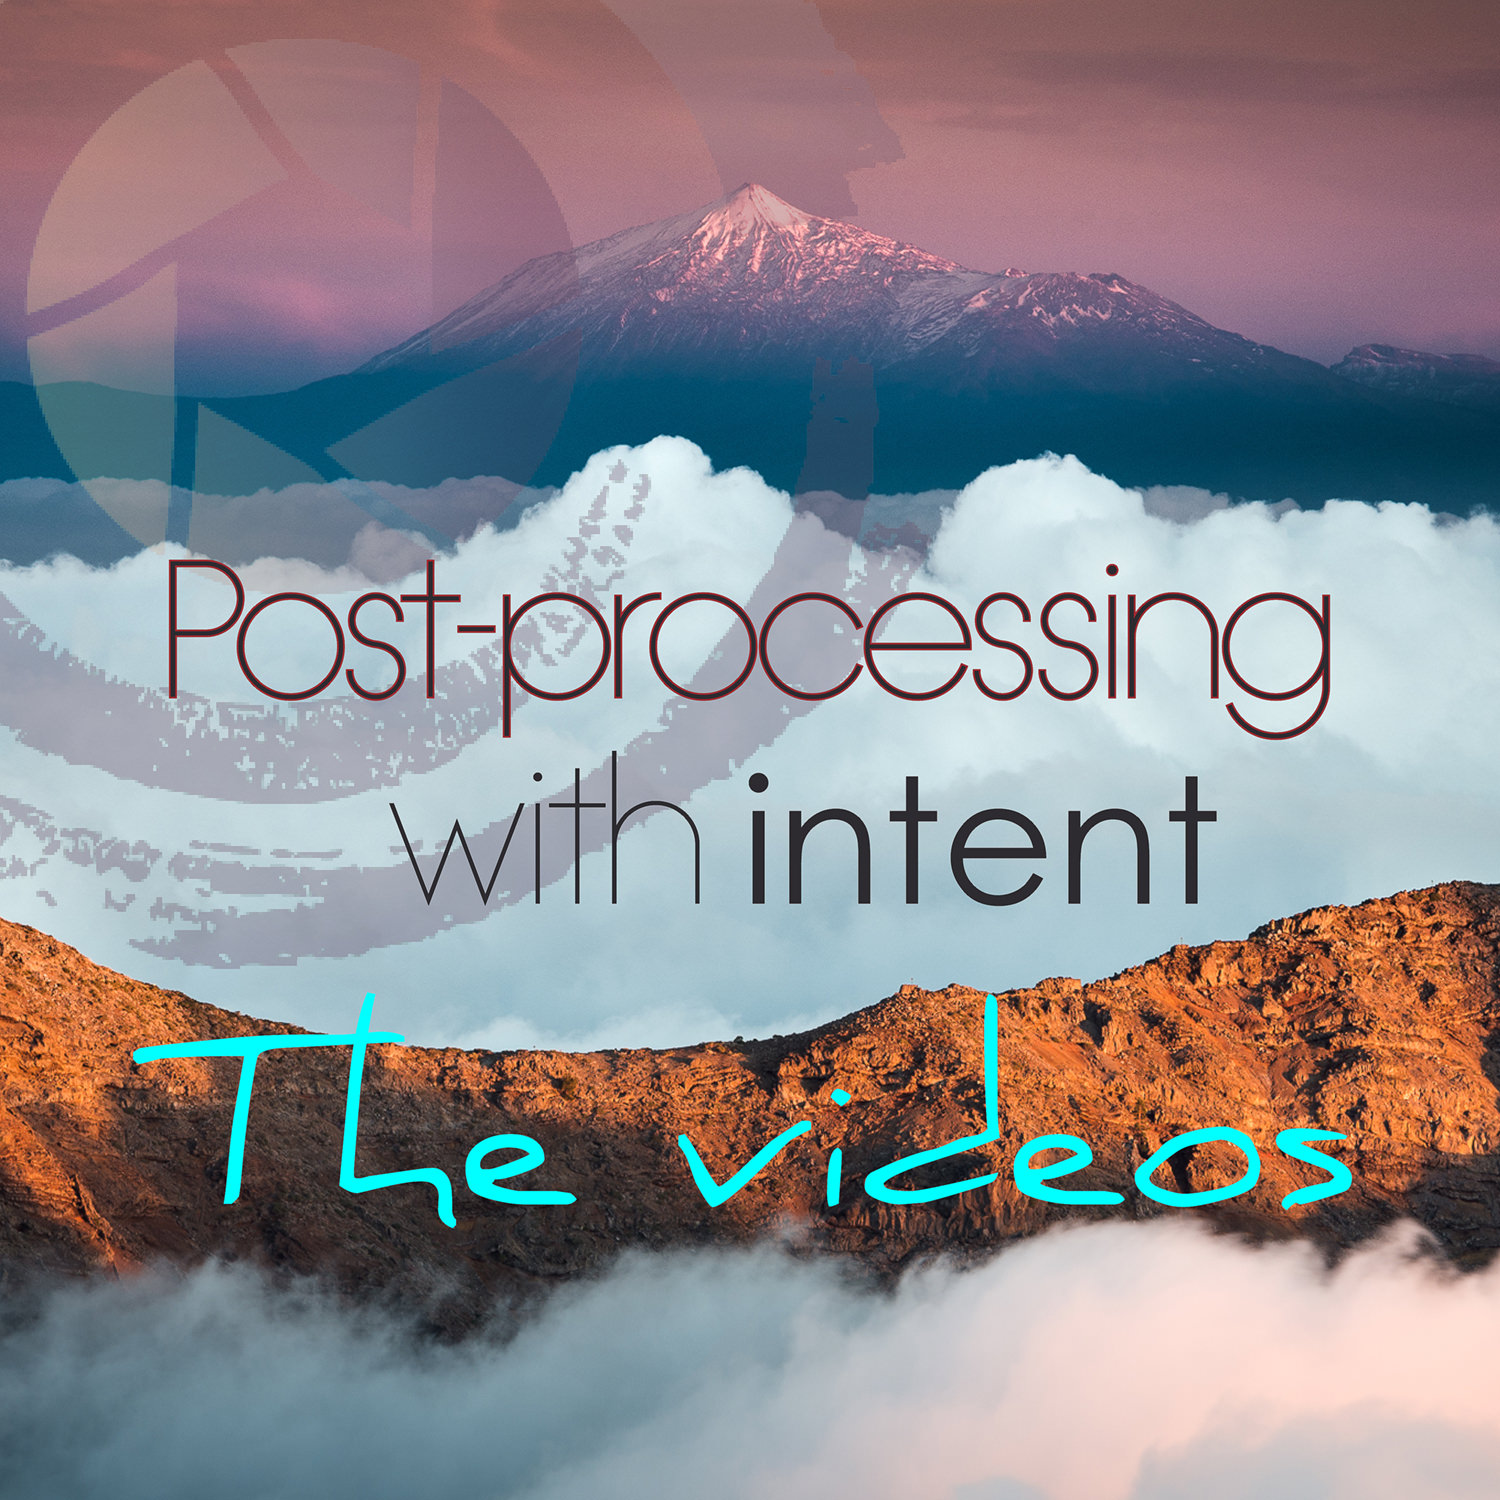 9. POST-PROCESSING WITH INTENT - VIDEO CONTENT